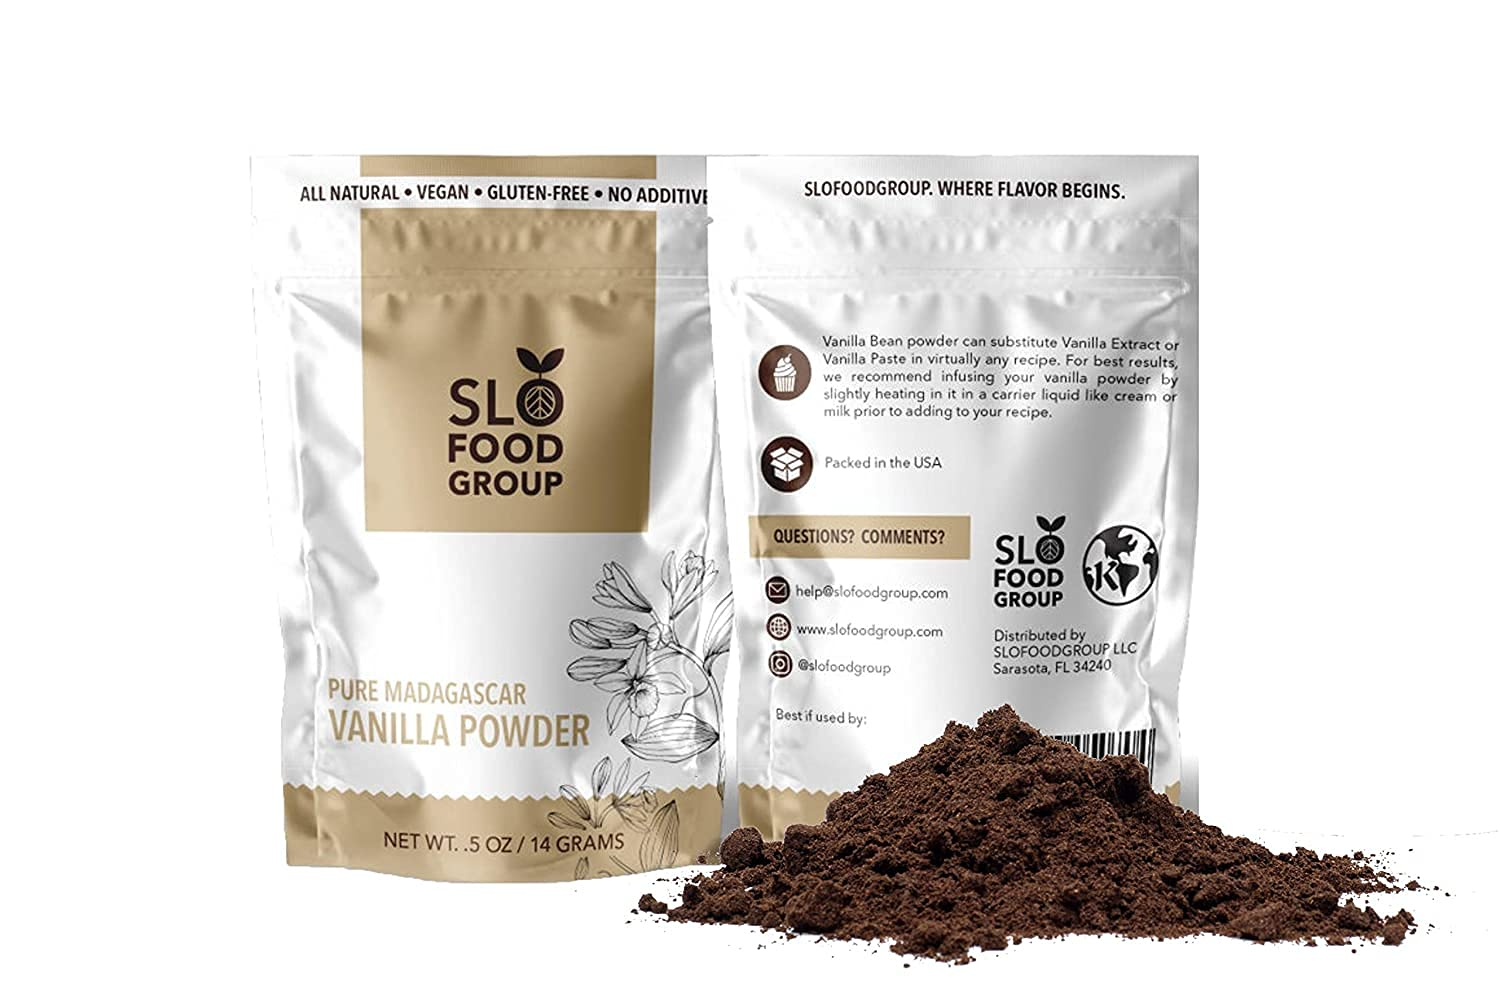 Slofoodgroup - Madagascar Vanilla Bean Made Discount is also Special price for a limited time underway Powder 8 oz.